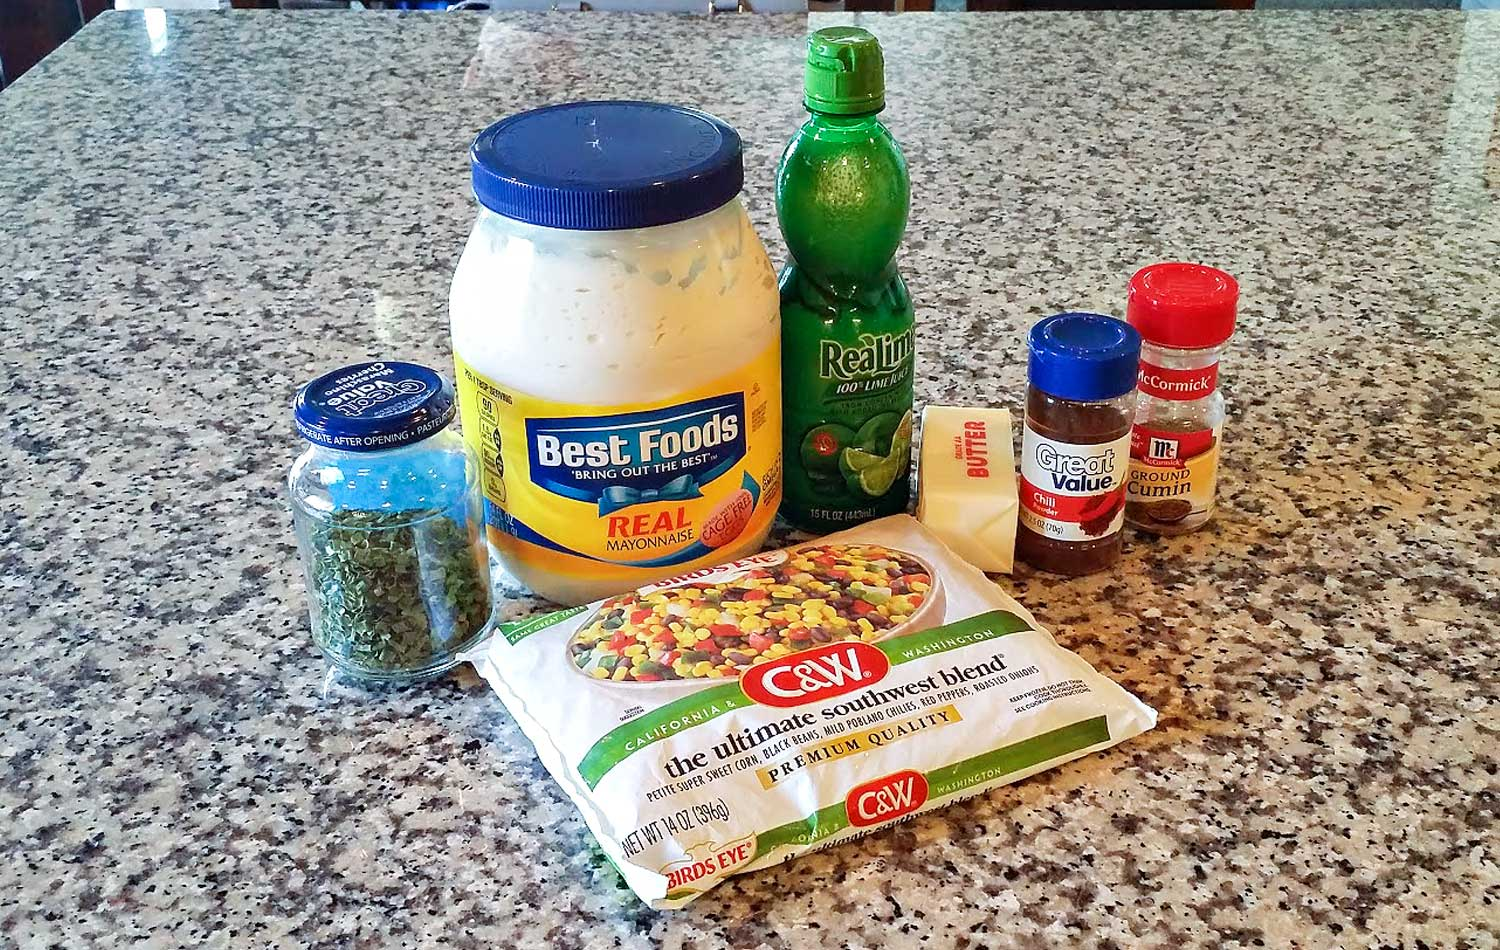 Assemble your ingredients: Ultimate Southwest Blend frozen pack (contains corn, black beans, chilies, red peppers & roasted onions), butter, chili powder, cumin, mayonnaise, lime juice, chives, salt and pepper